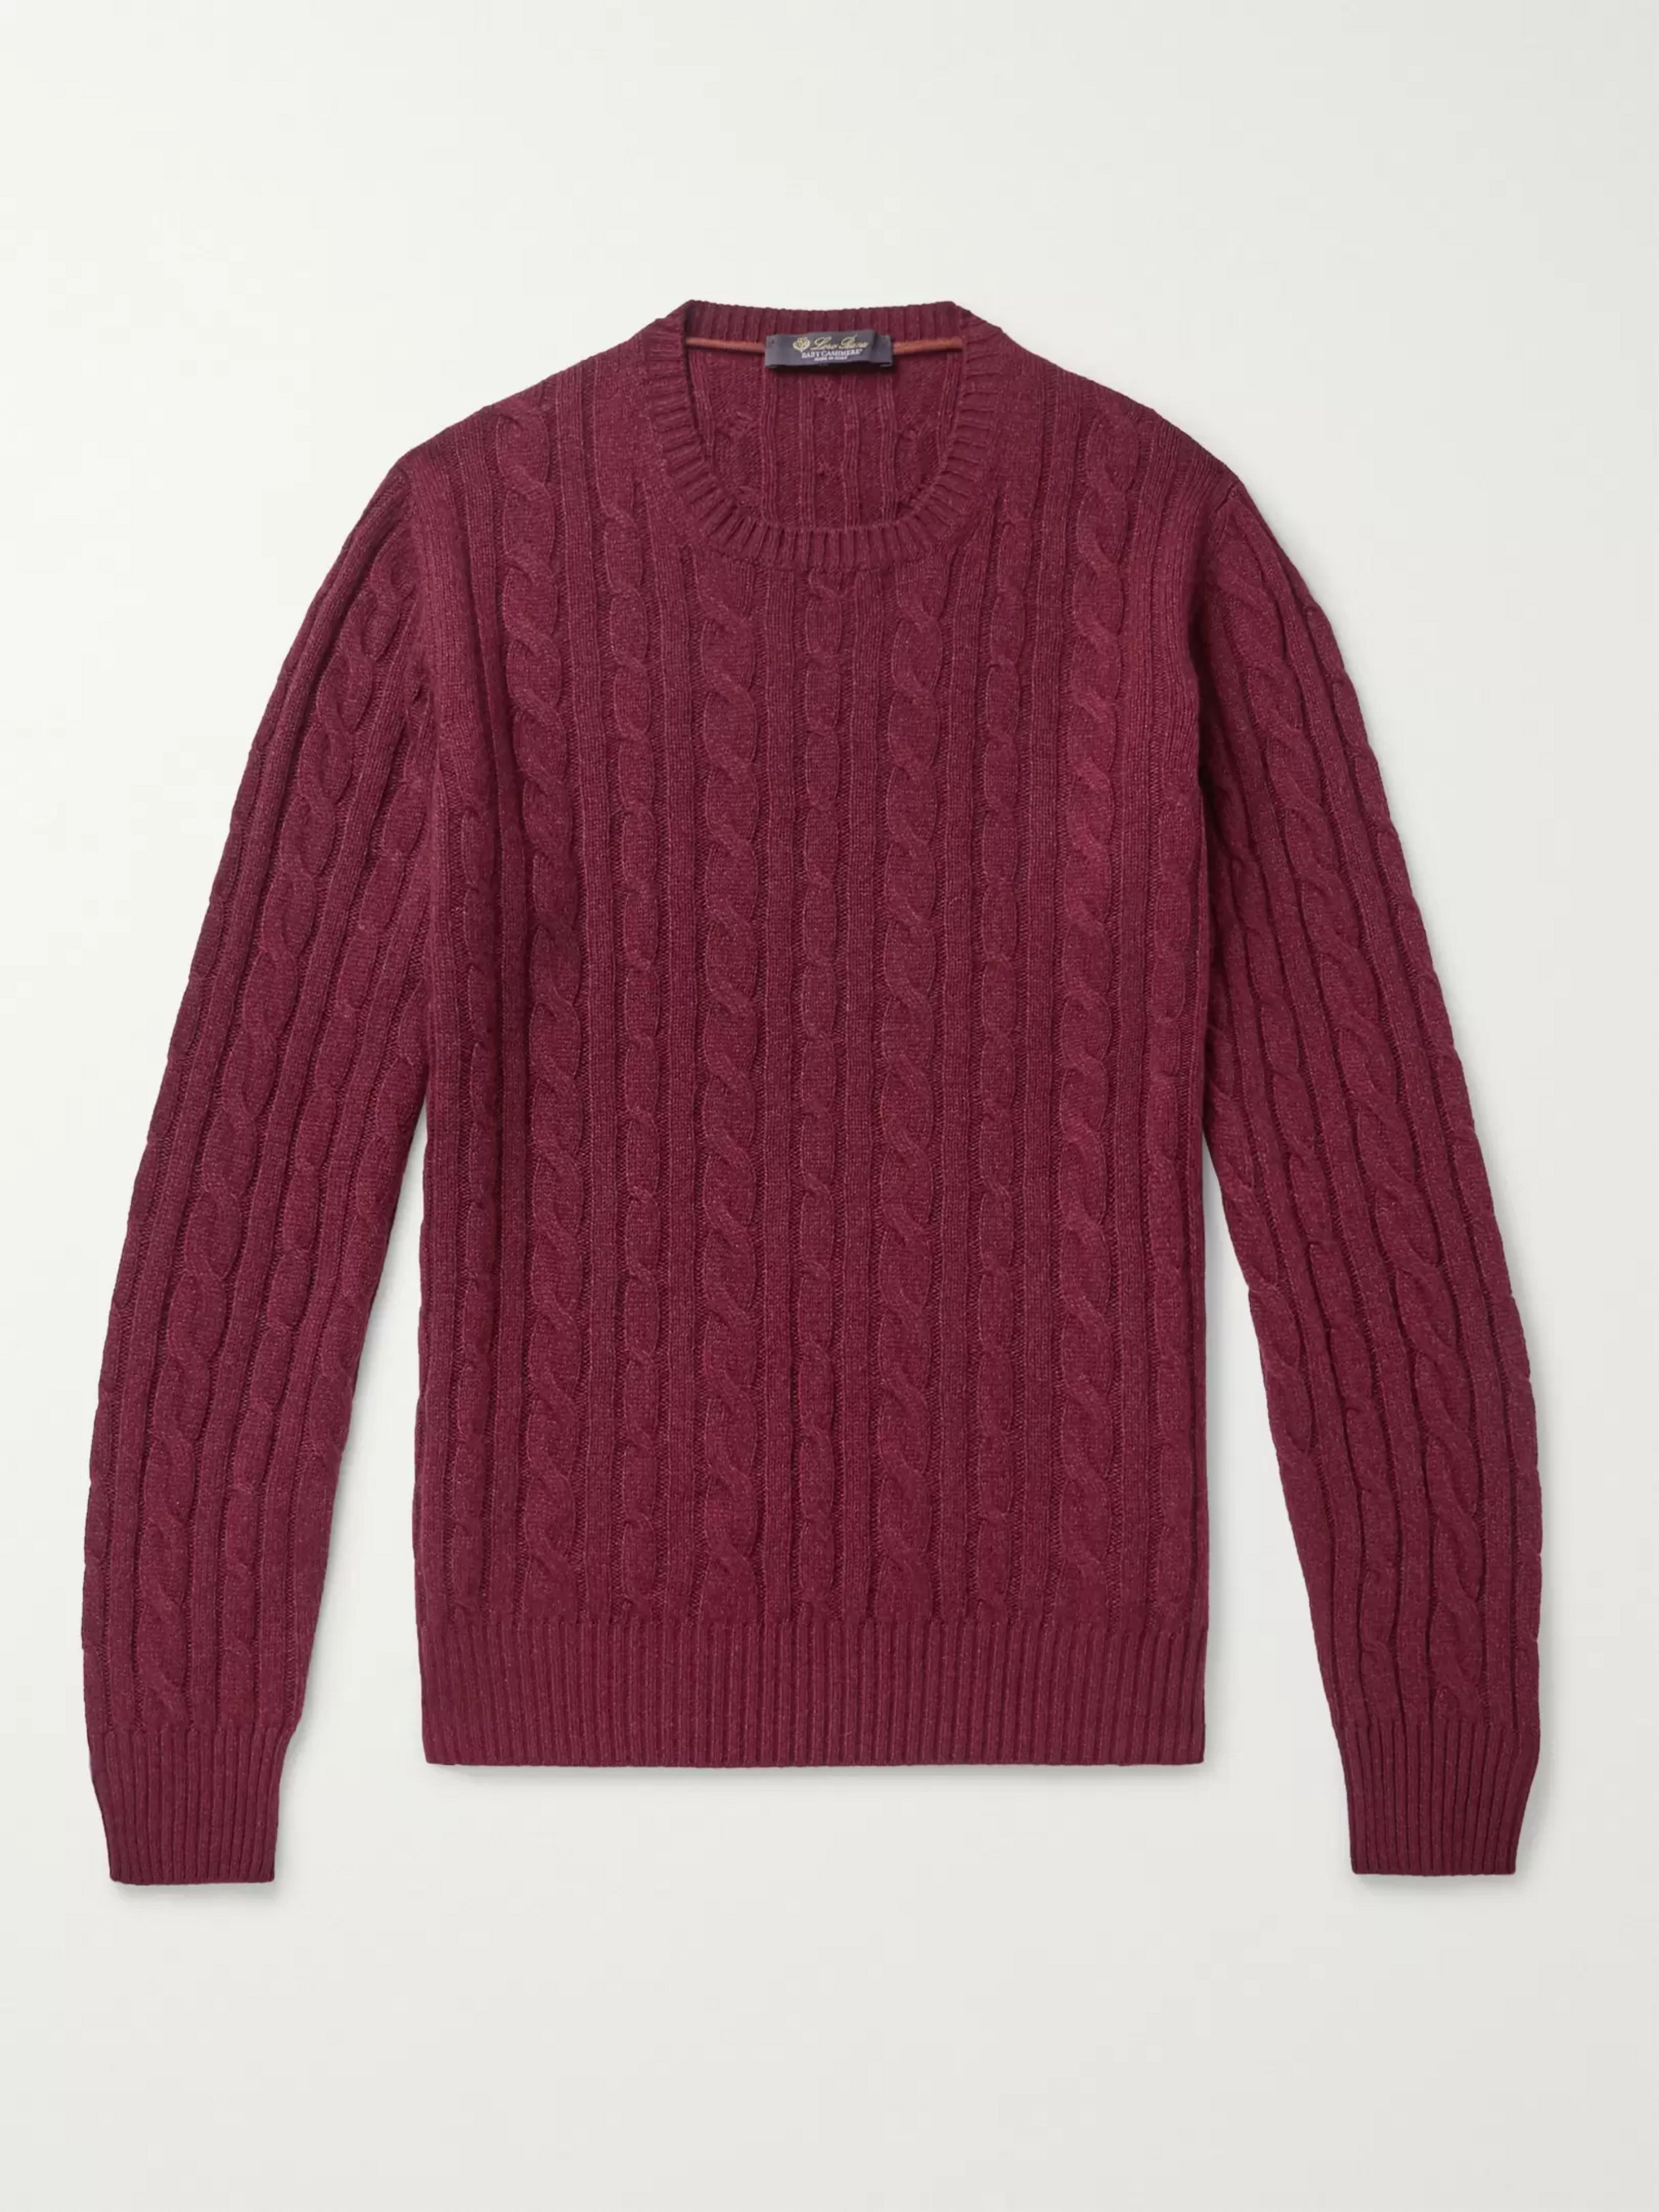 Loro Piana Girocollo Slim-Fit Cable-Knit Baby Cashmere Sweater